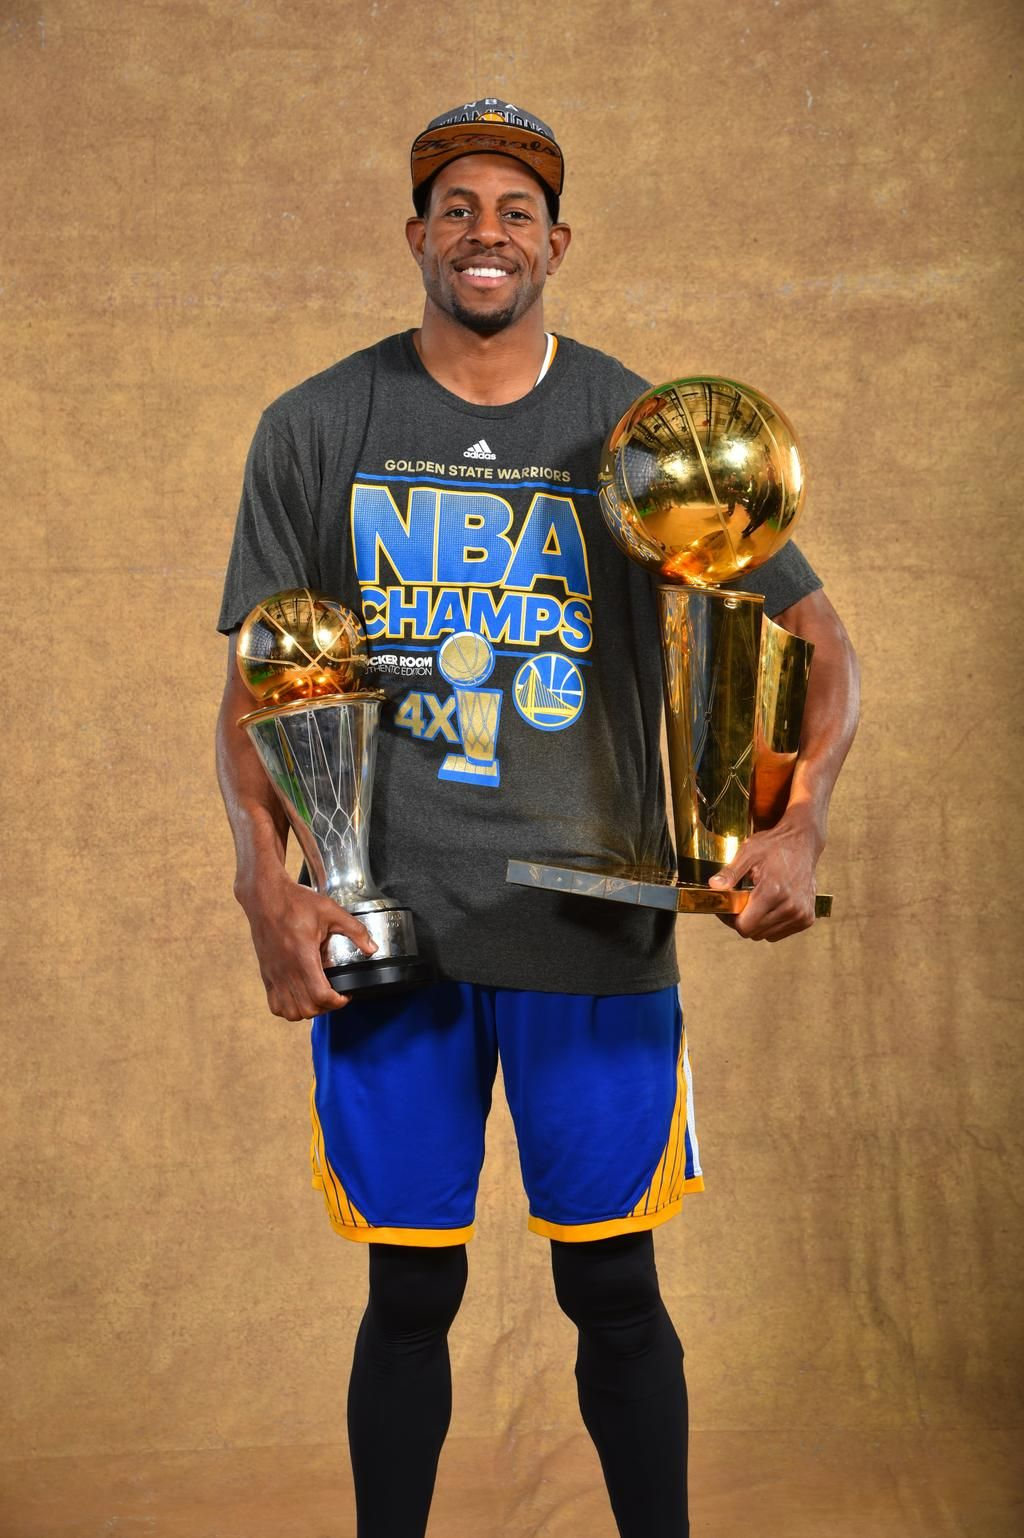 on Golden state warriors, Andre iguodala